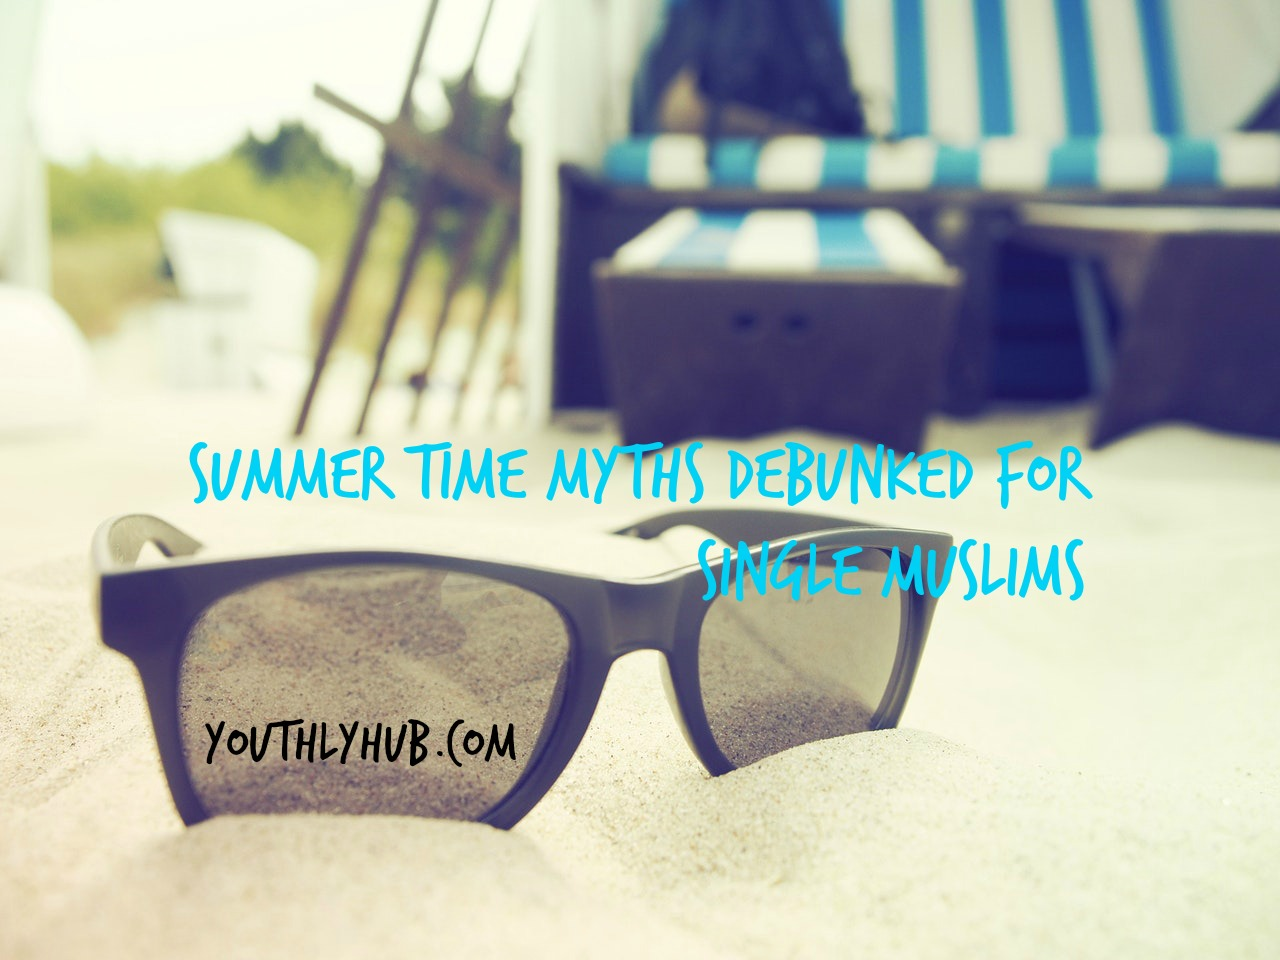 beach scenery for summer time myths post on YouthlyHub.com